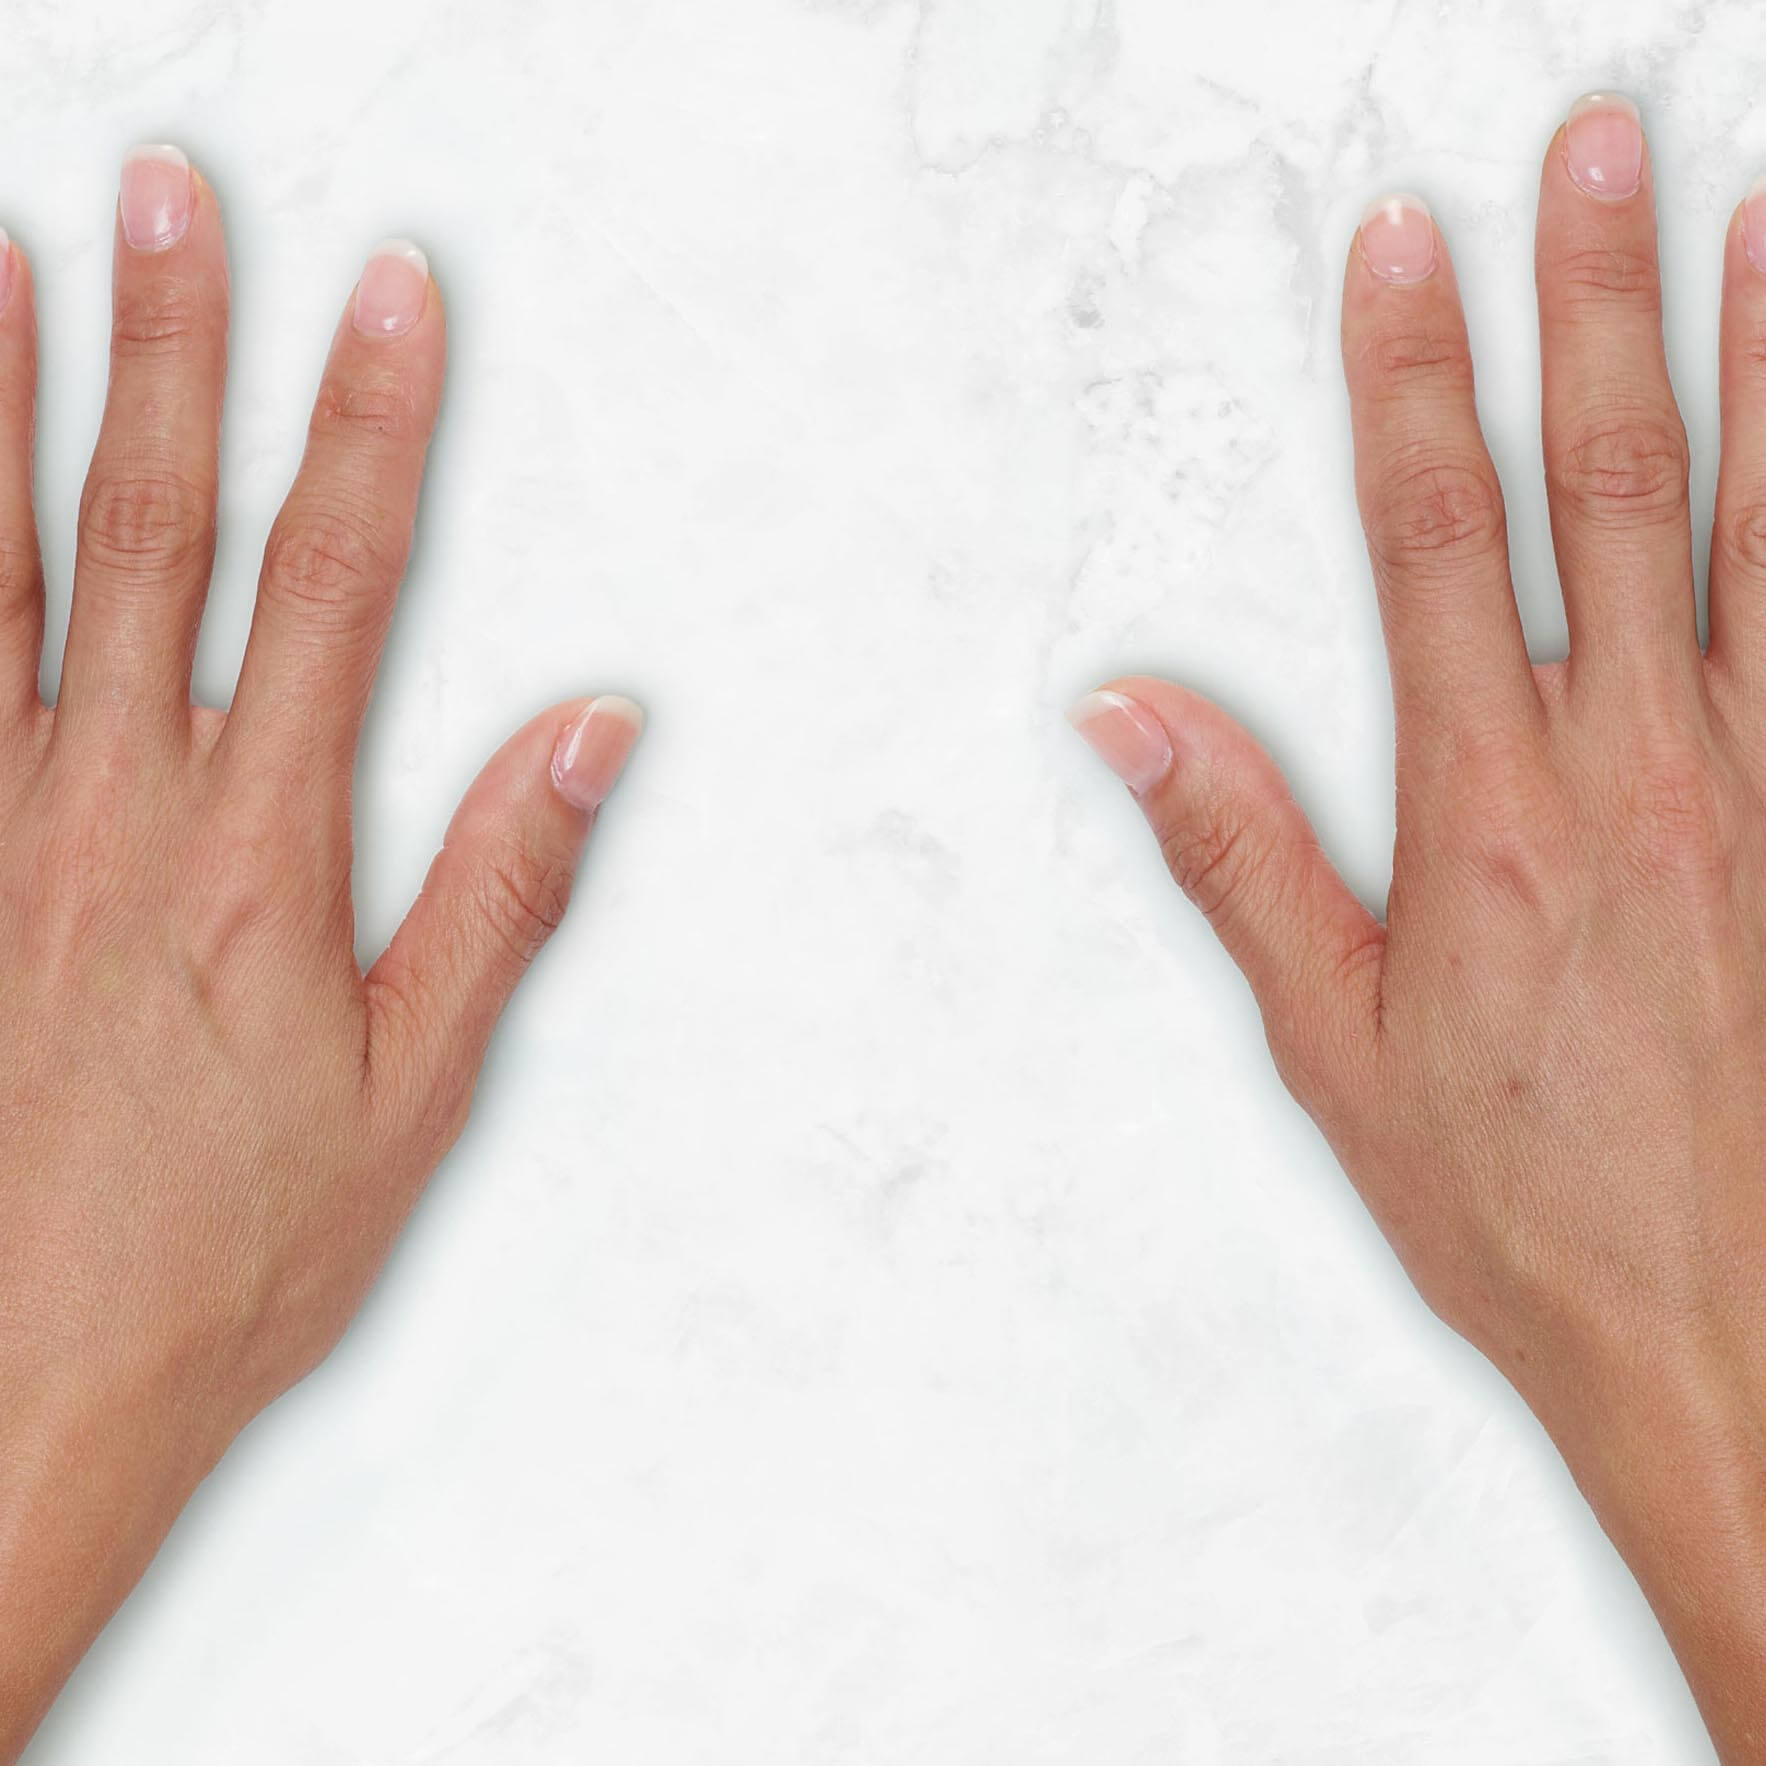 Restylane Lyft for hands before and after ‐ Gina Clinical view